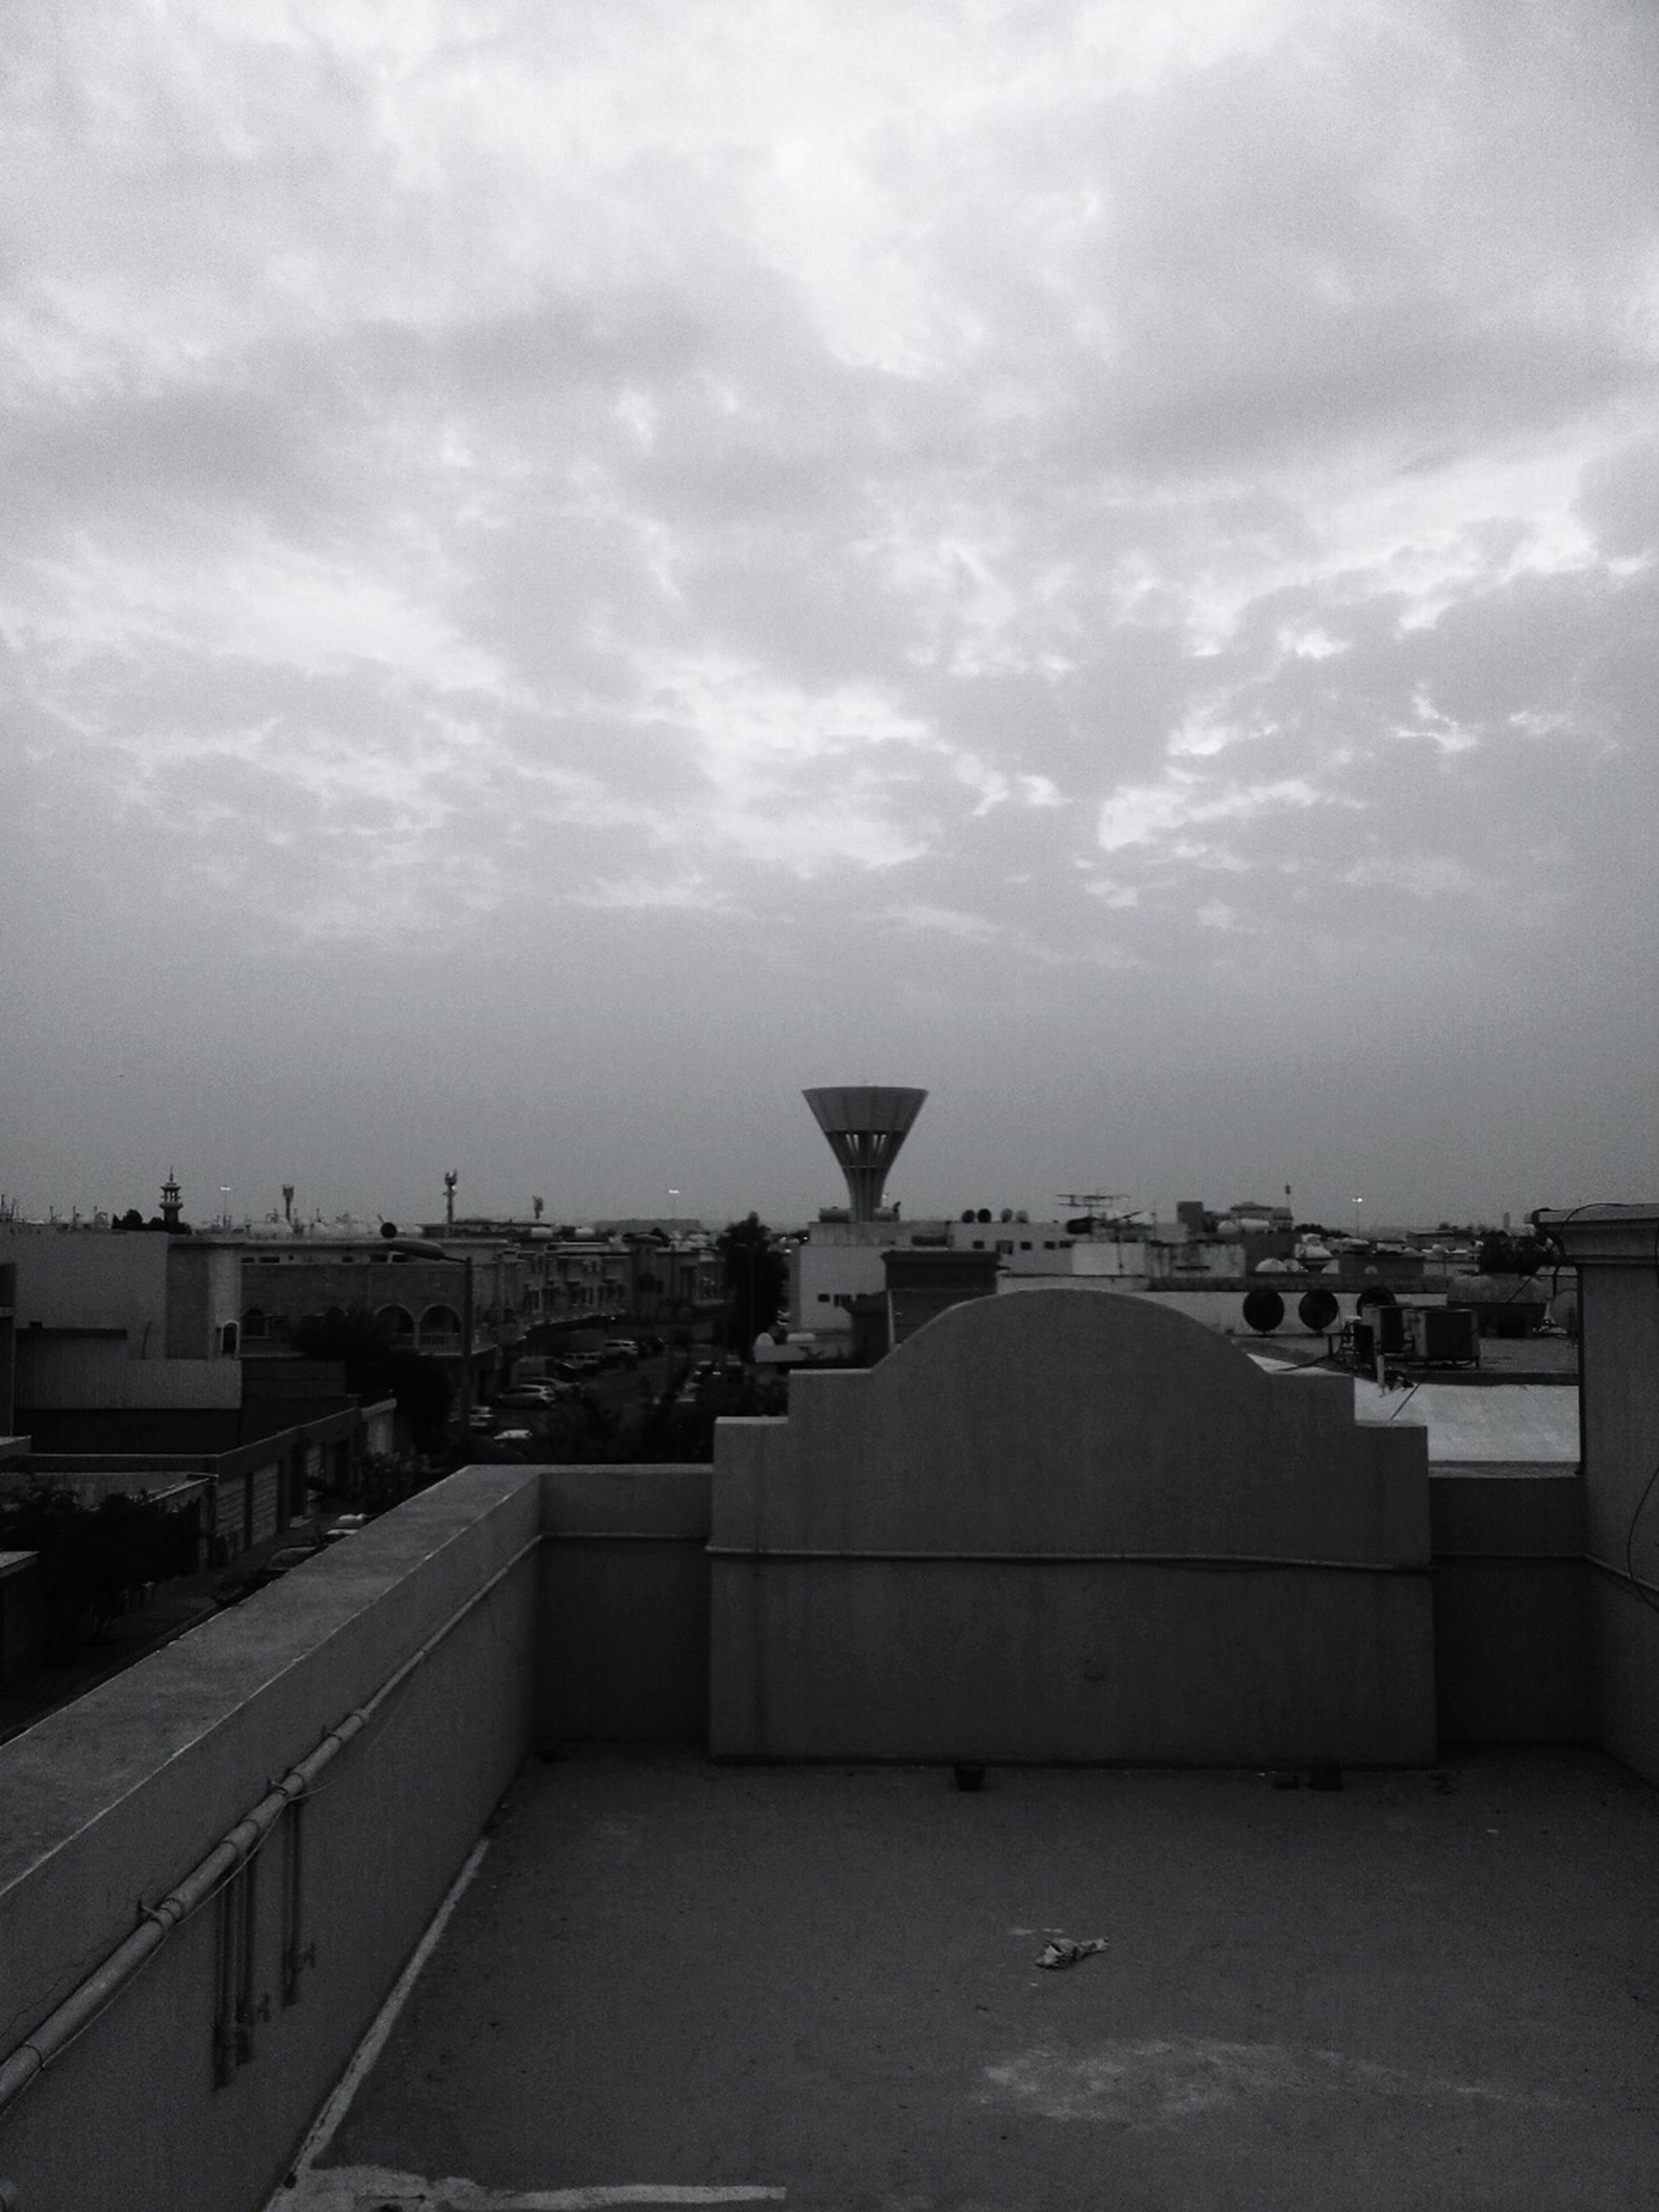 architecture, built structure, building exterior, sky, no people, outdoors, building terrace, day